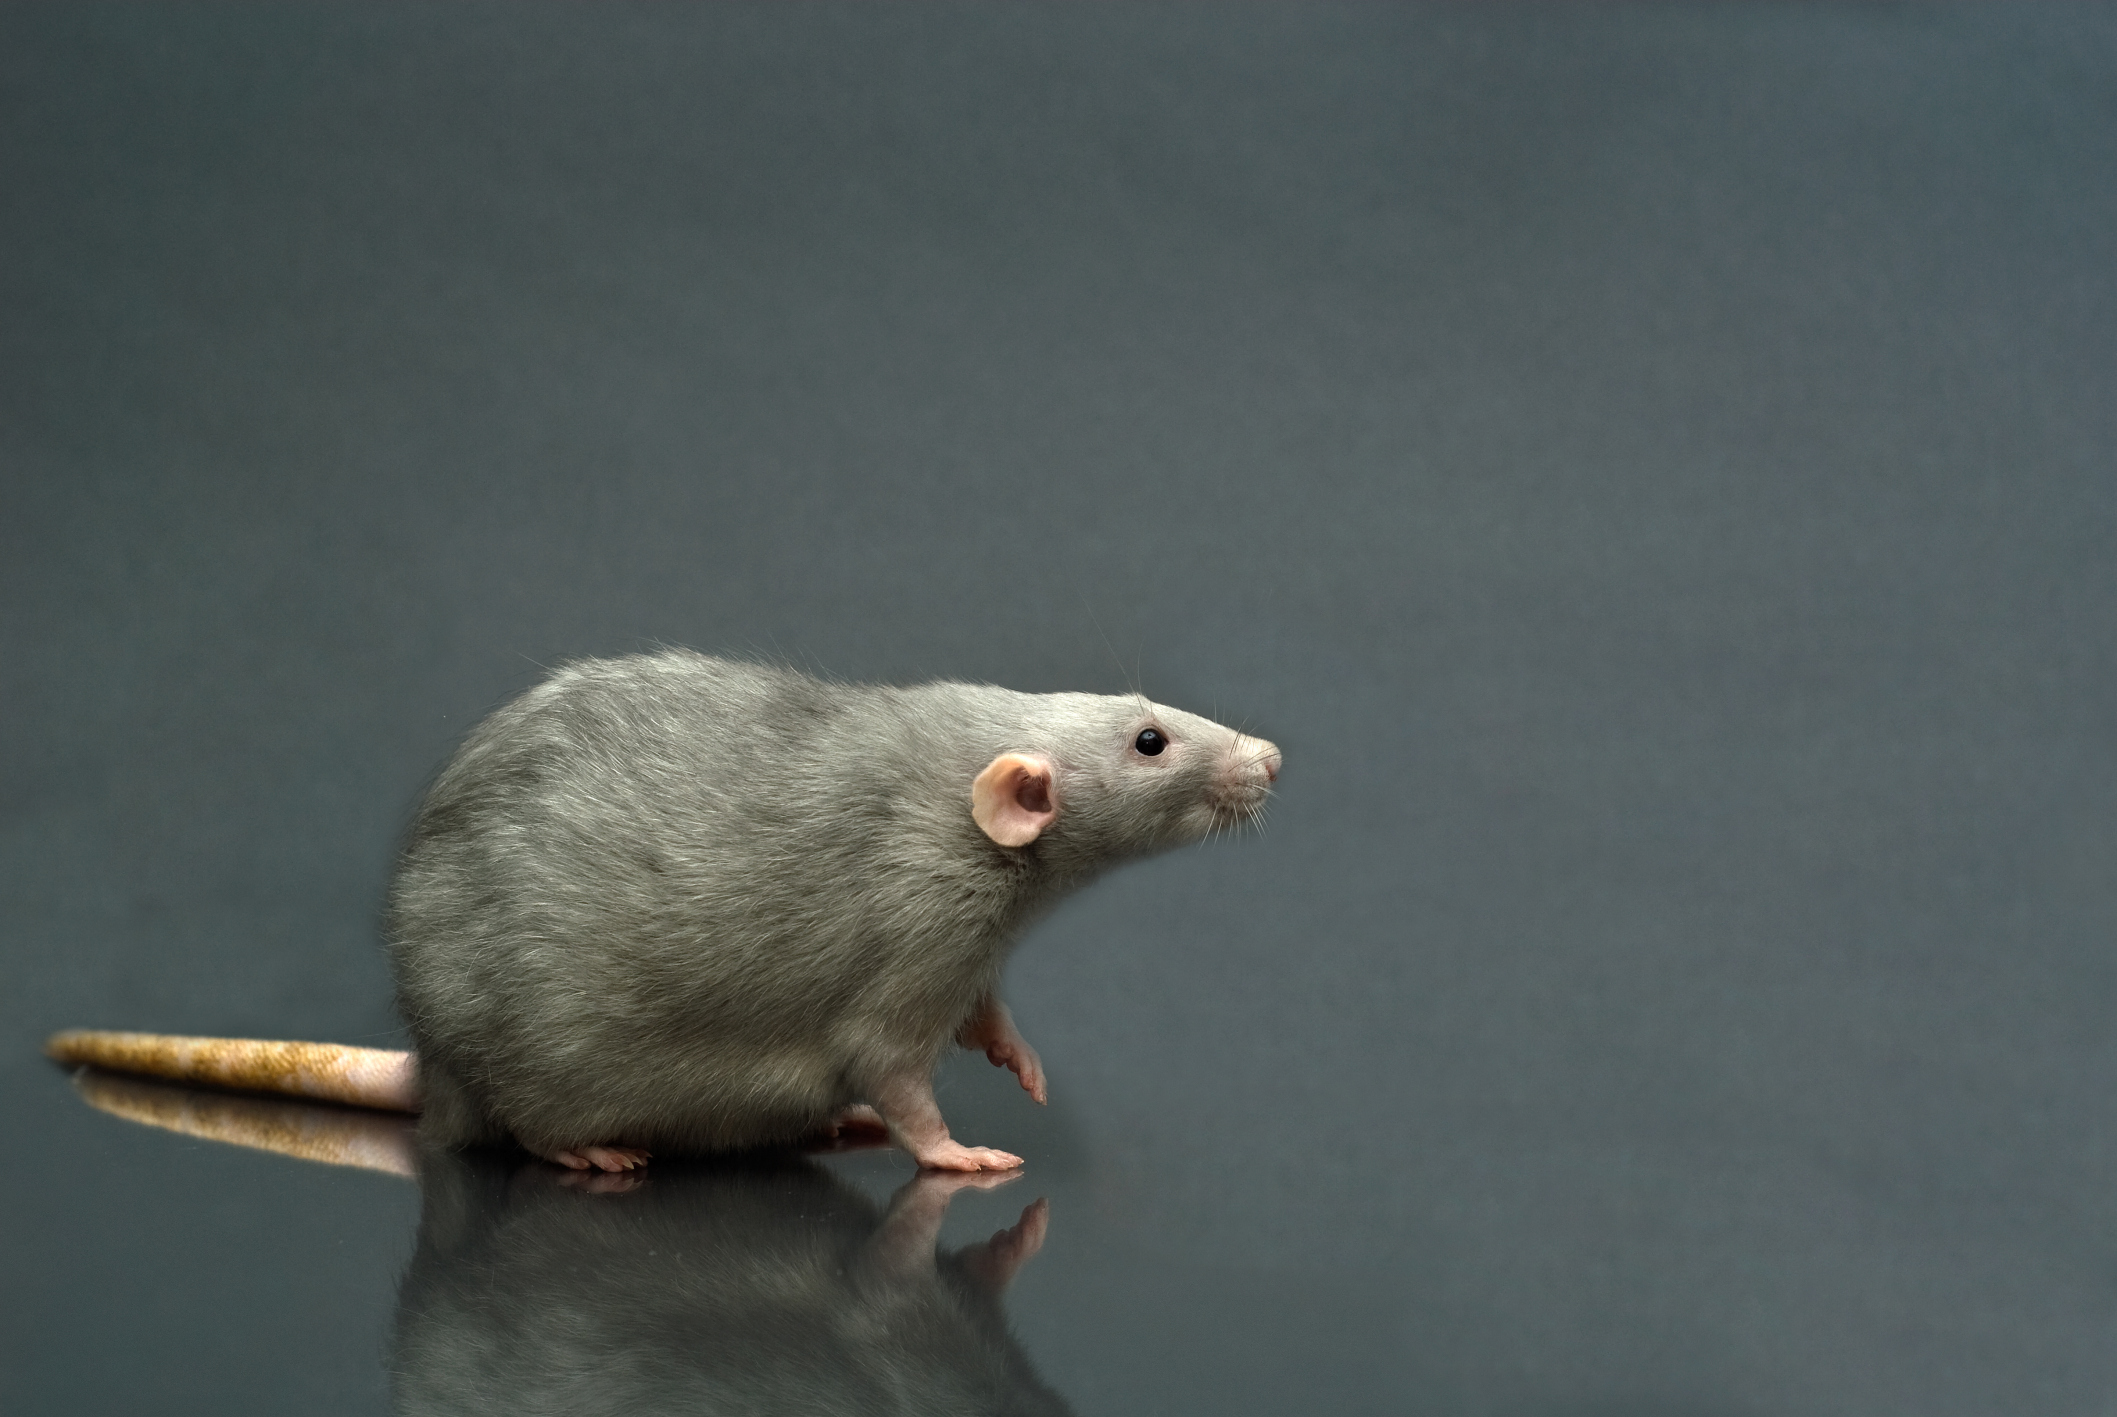 Can You Breed Mice For Snake Food